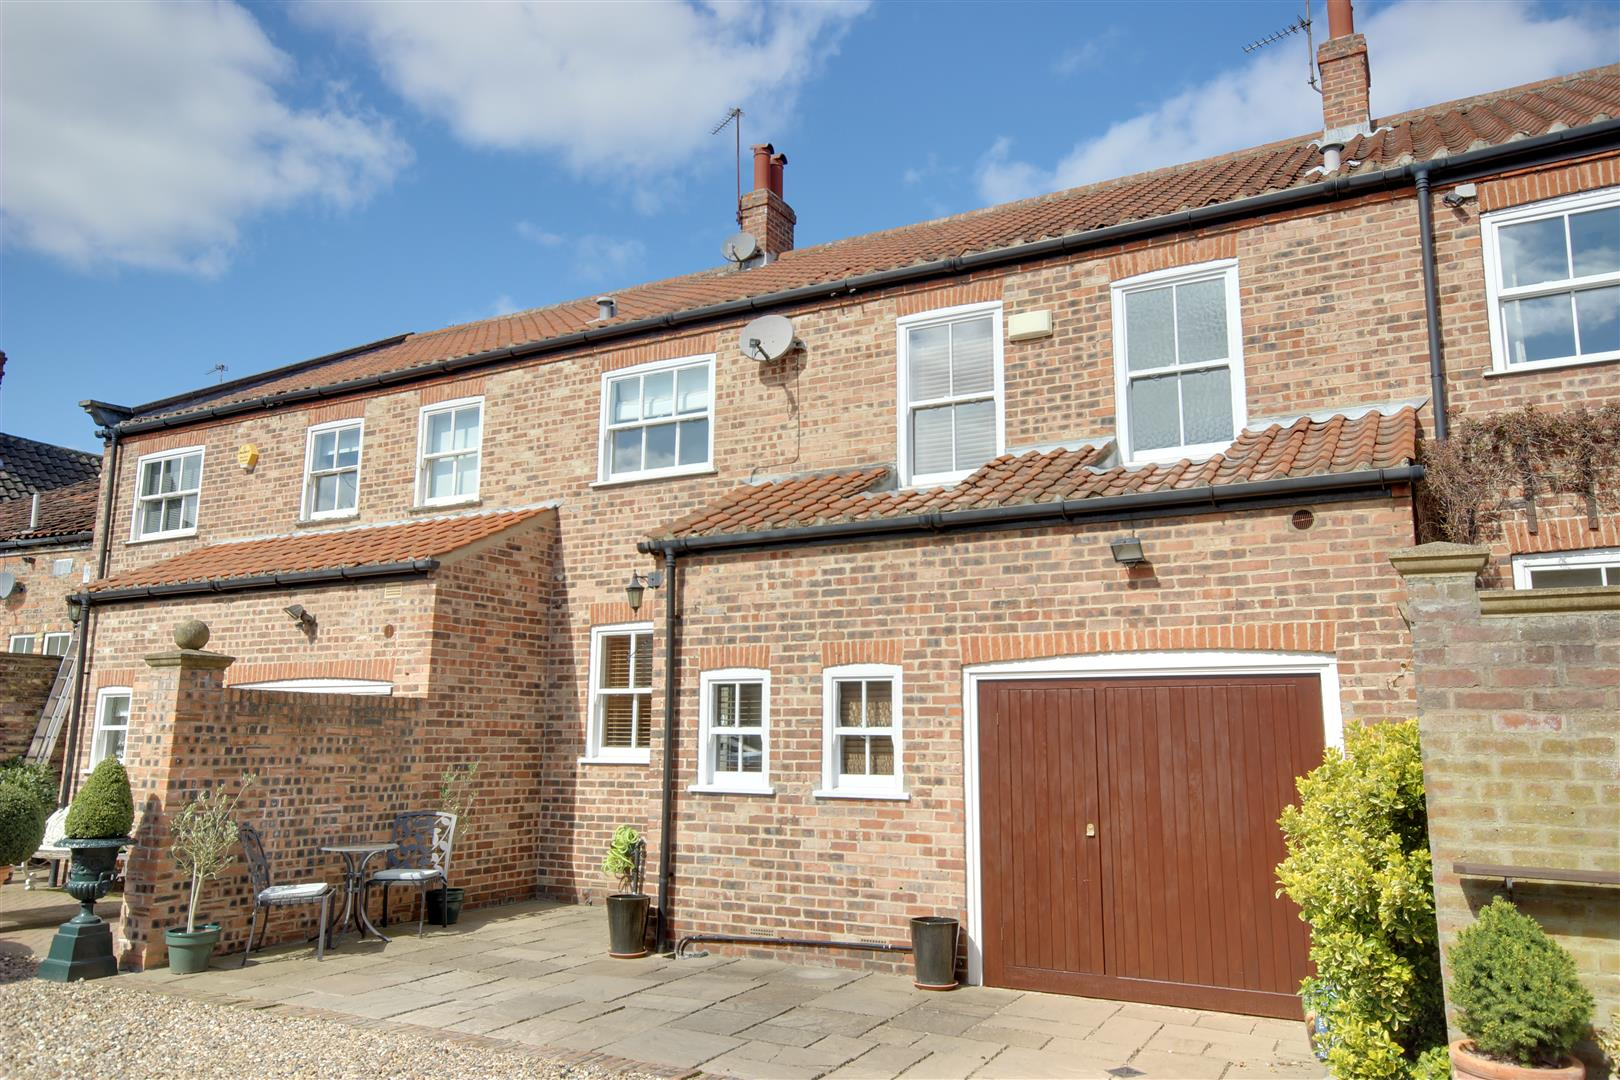 2 Ladywell Court, Welton, Brough, 2, HU15 1LY